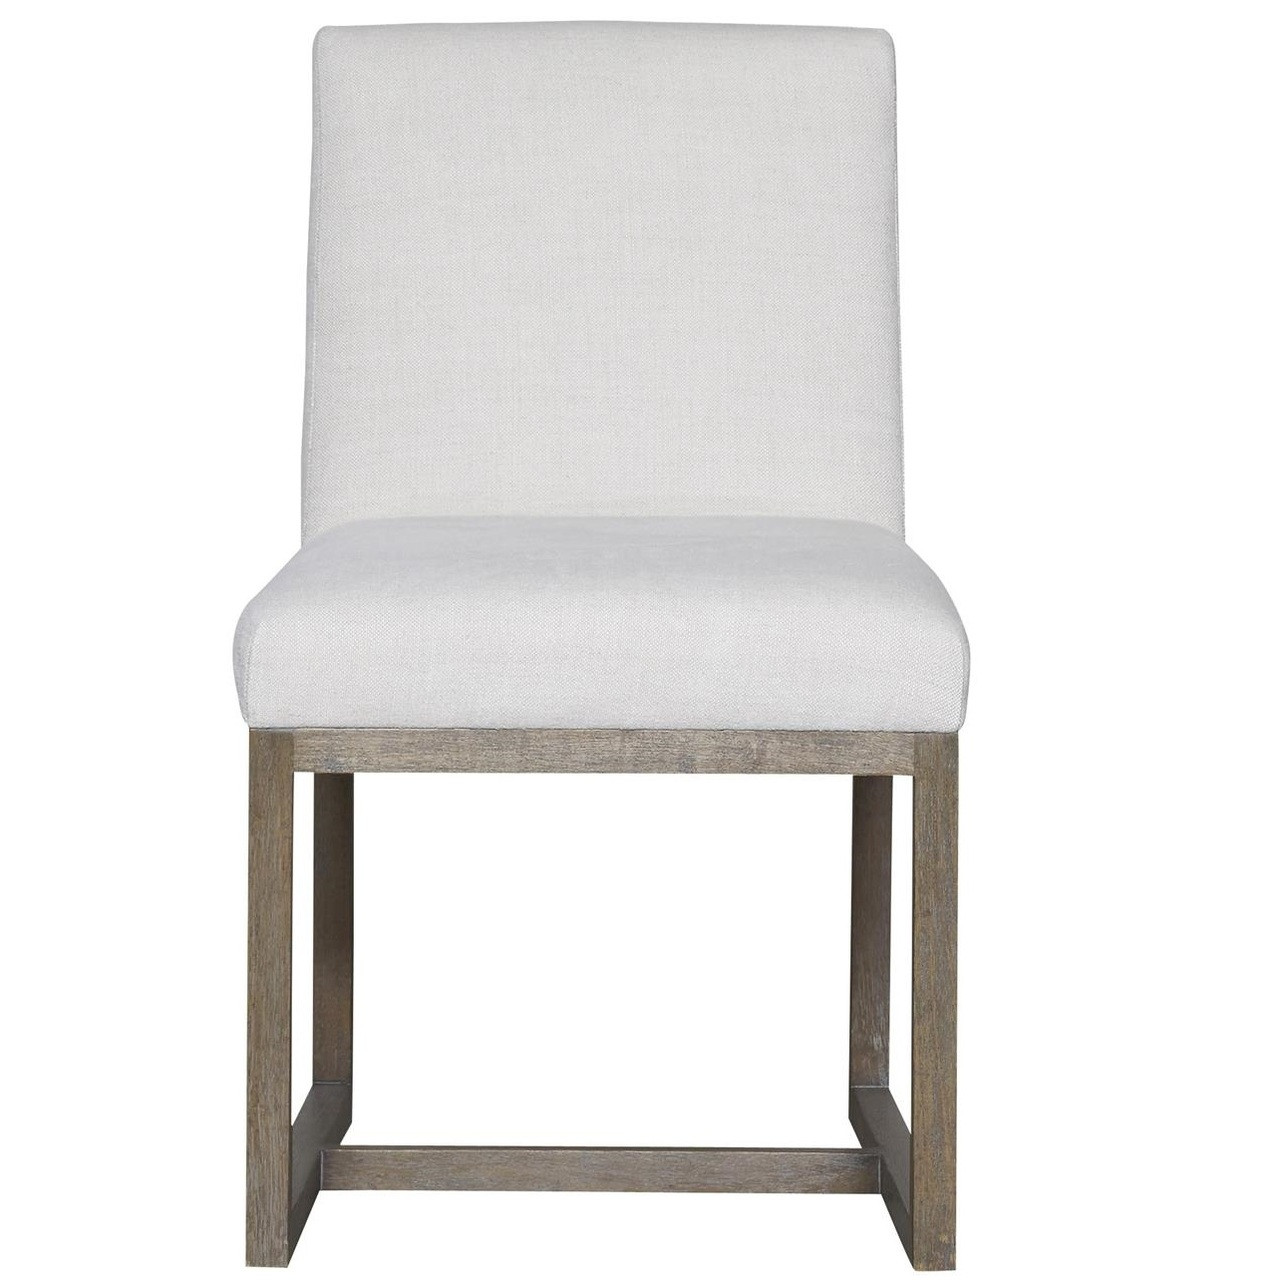 Upholstered Living Room Chairs Jamison Belgian Linen Upholstered Modern Dining Chair